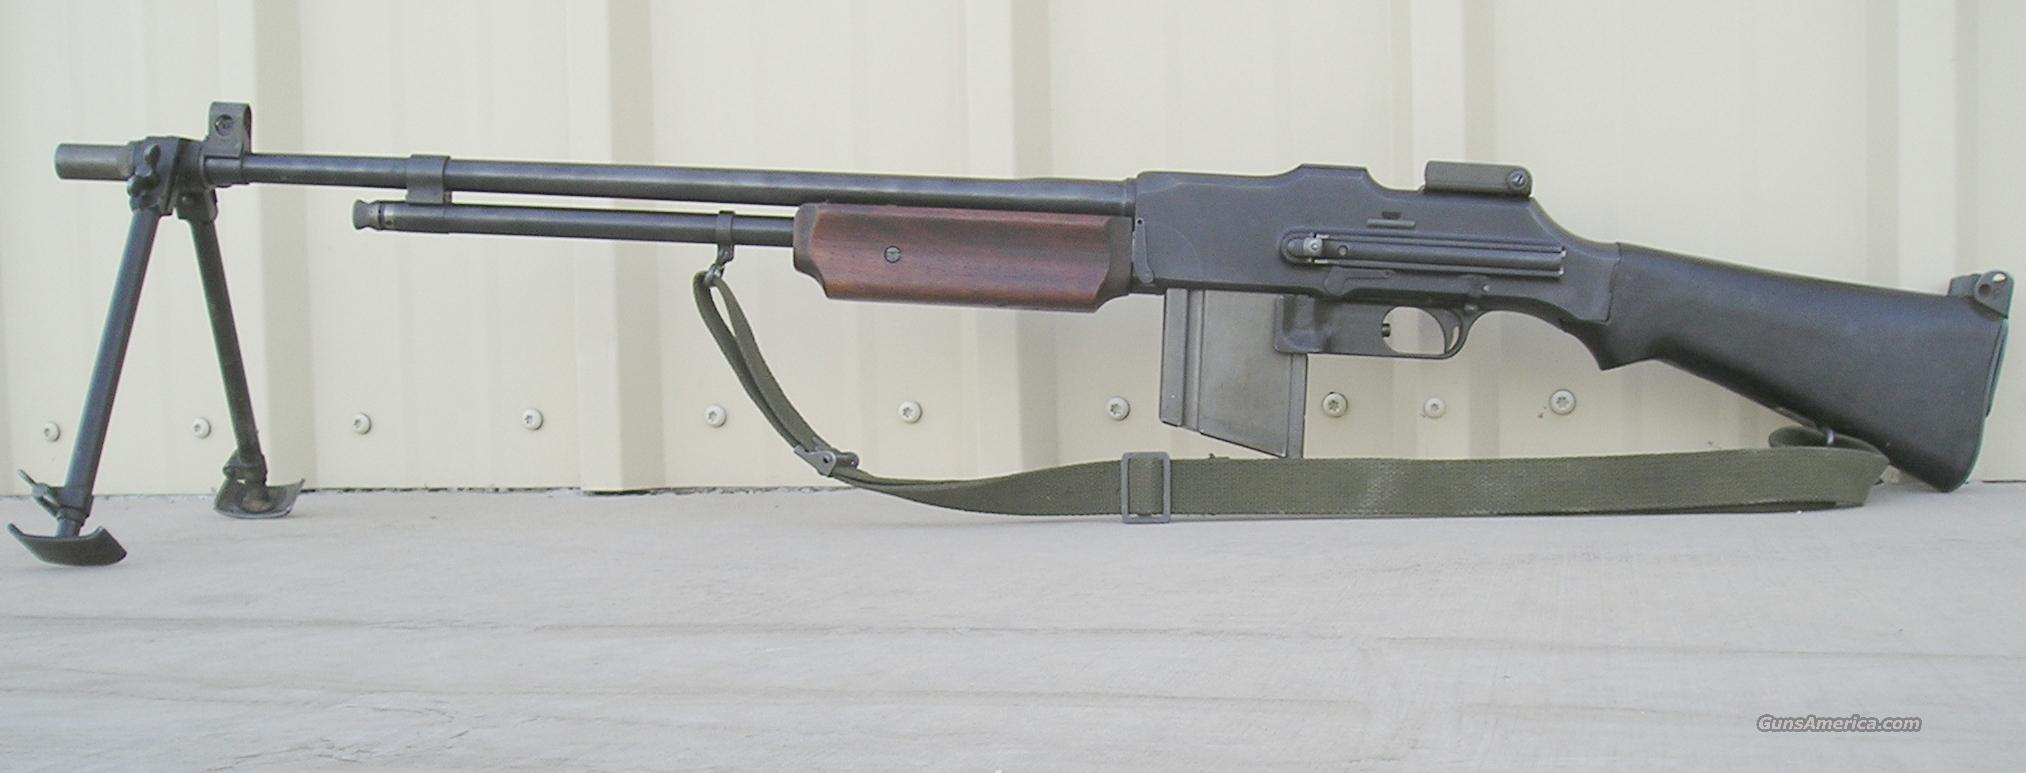 Browning BAR 1918 A NFA  Guns > Rifles > Browning Rifles > Semi Auto > Tactical